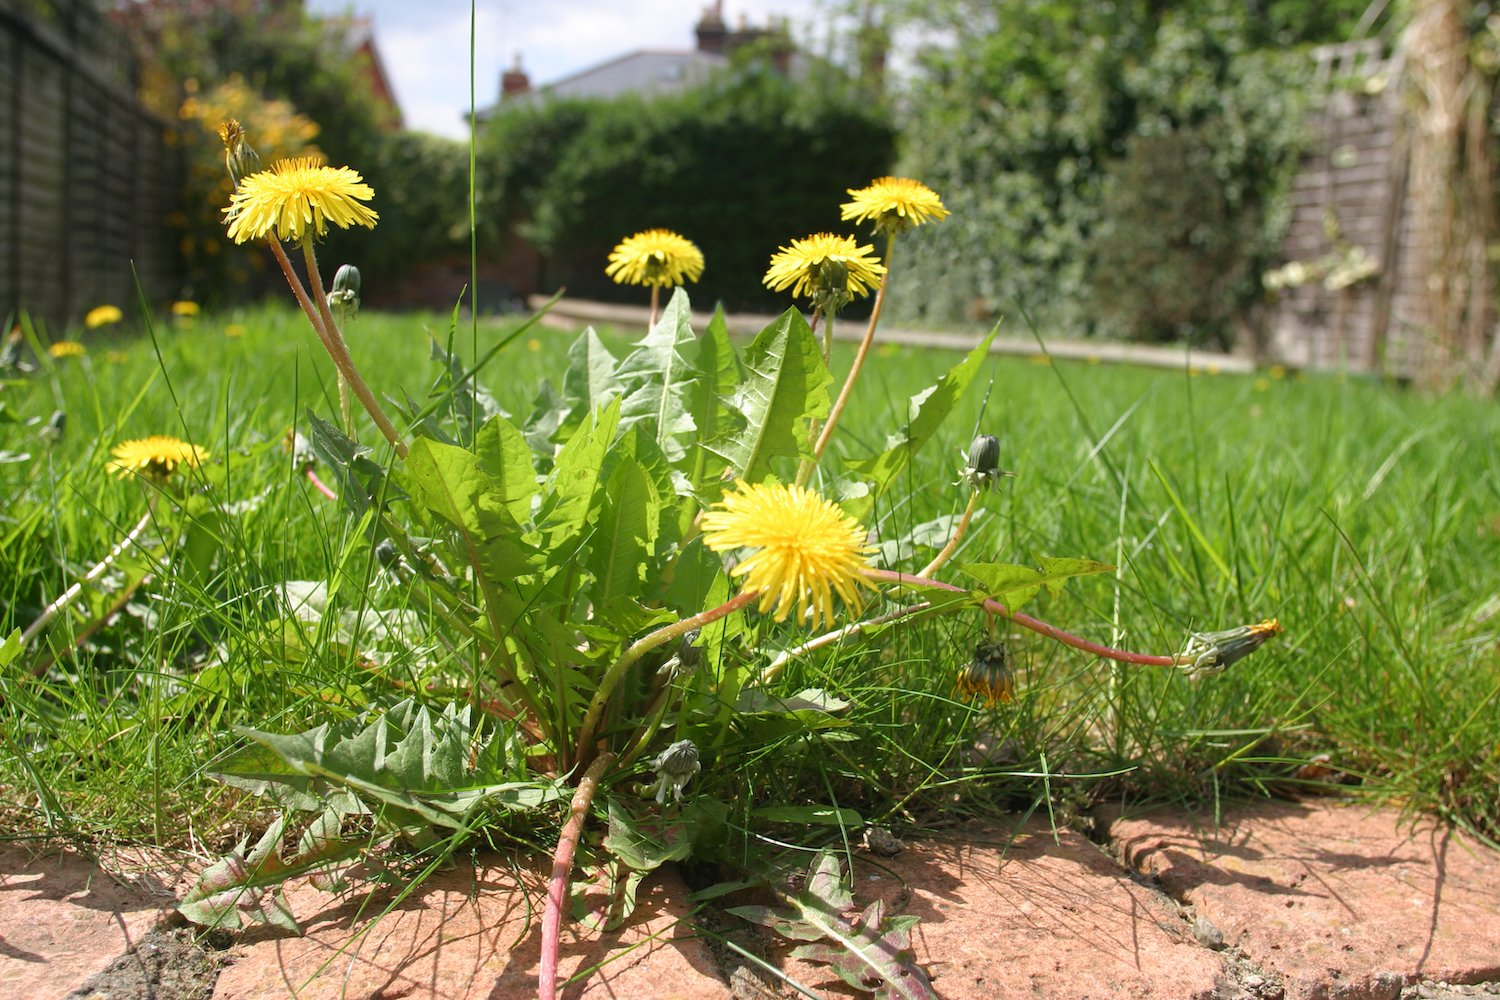 Pesky weeds ruining your lawn